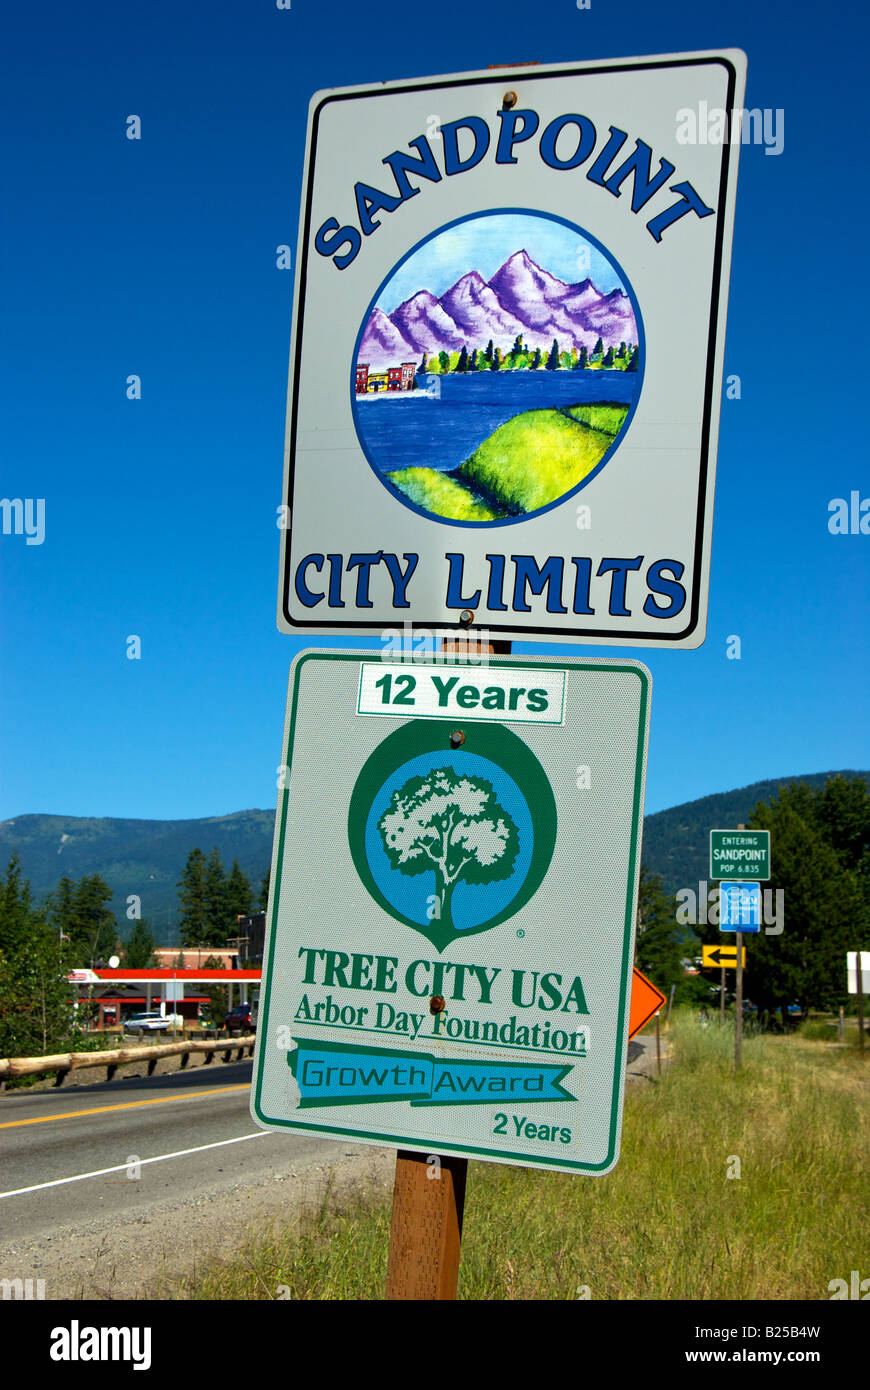 Sandpoint Idaho city limits sign on Highway Route 95 south - Stock Image